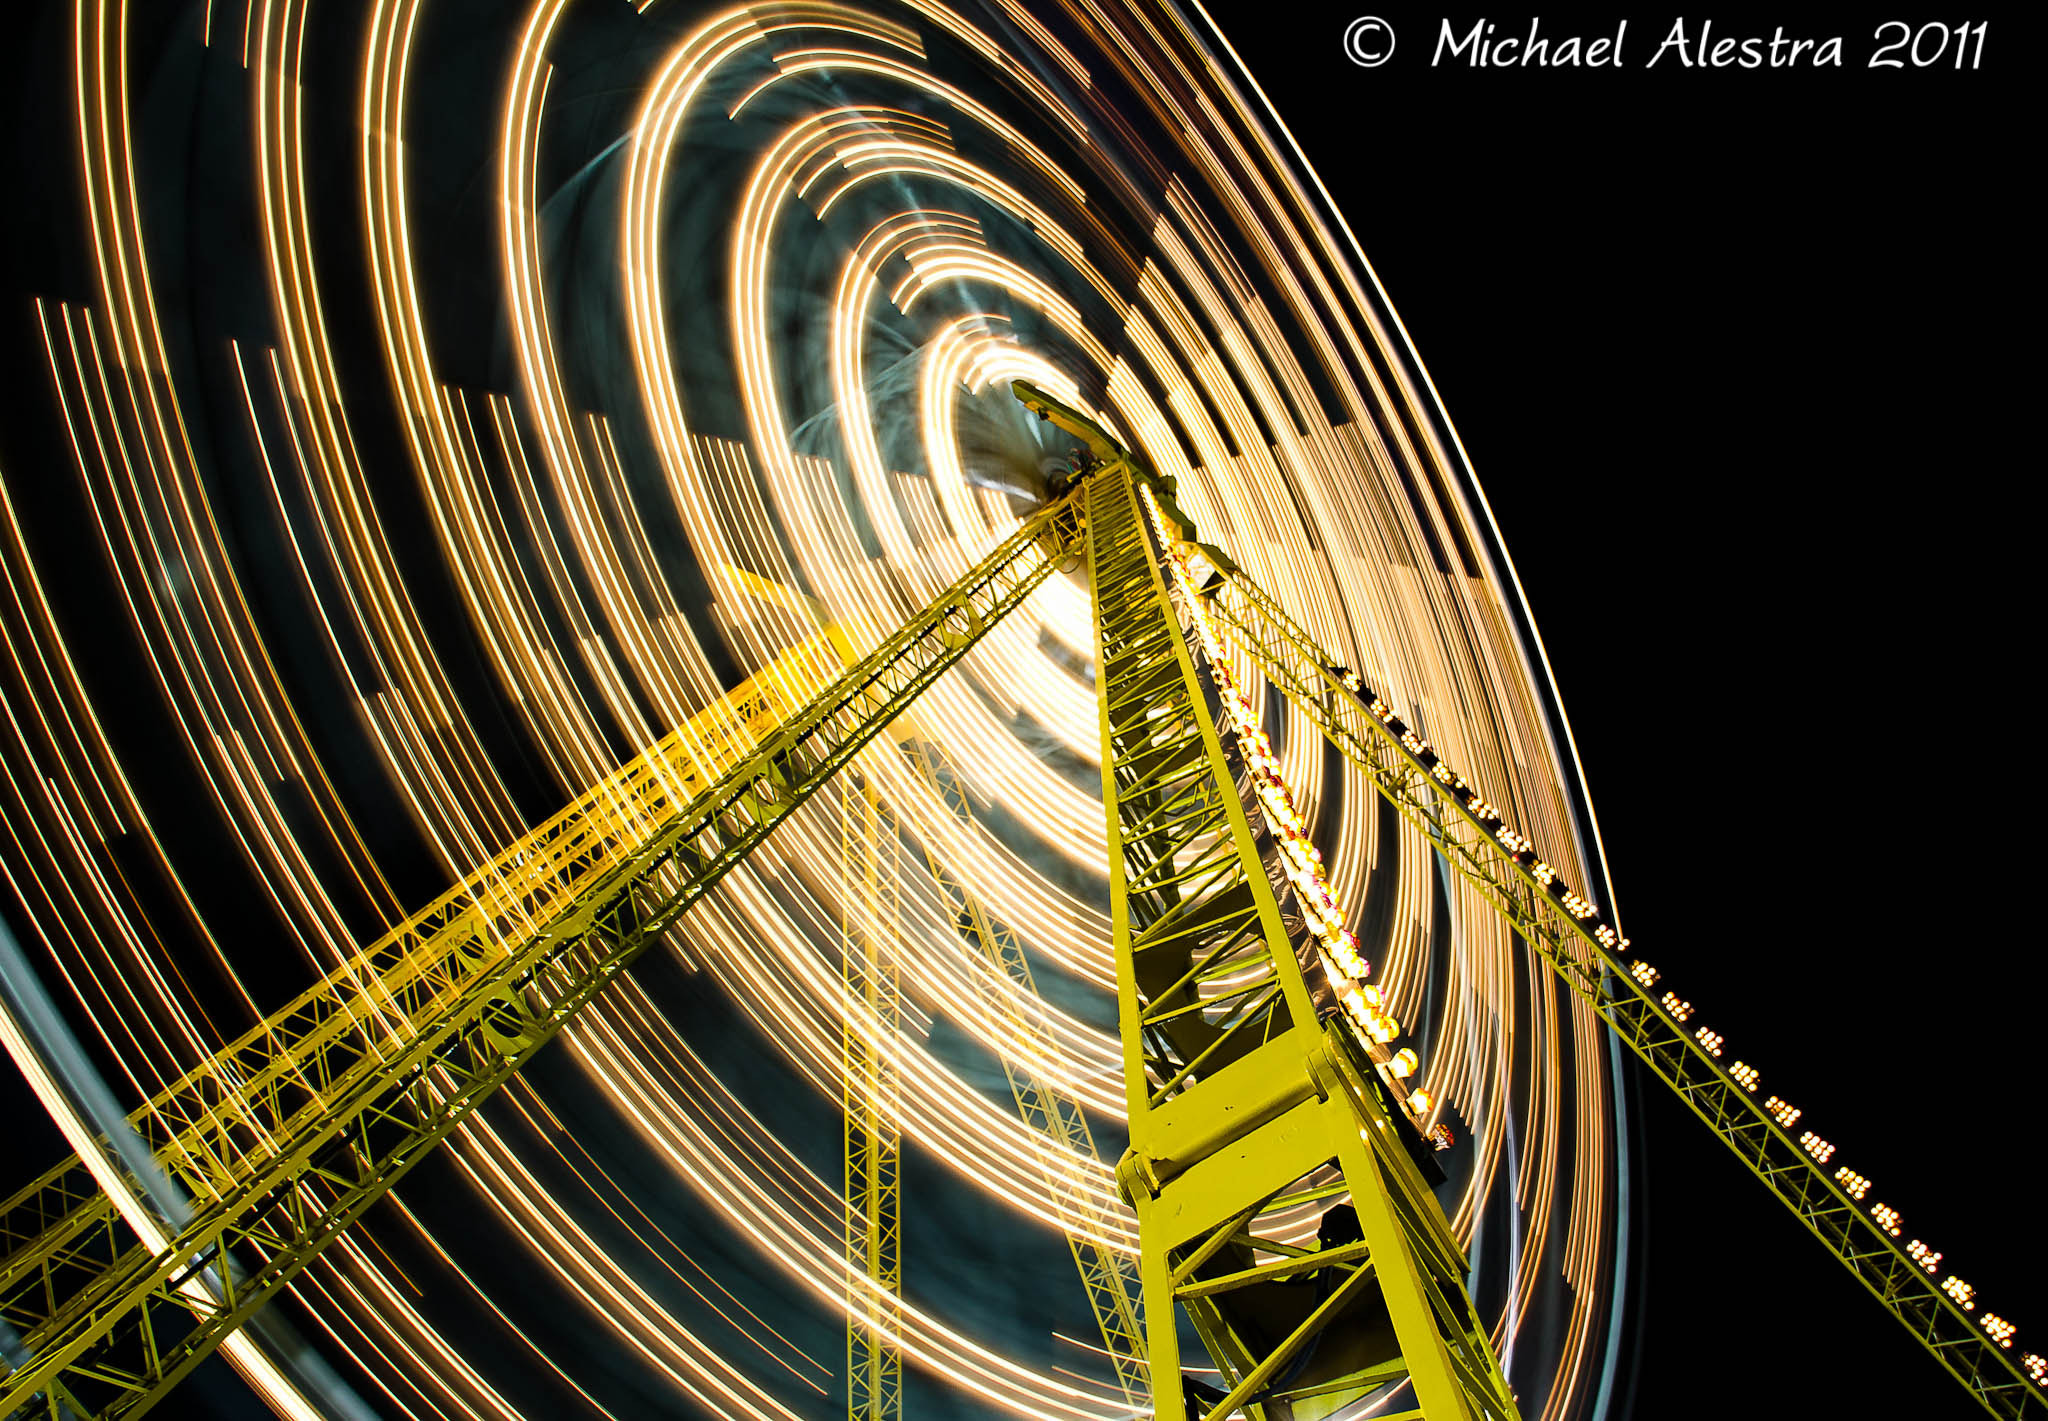 Photograph Spin! by Michael Alestra on 500px